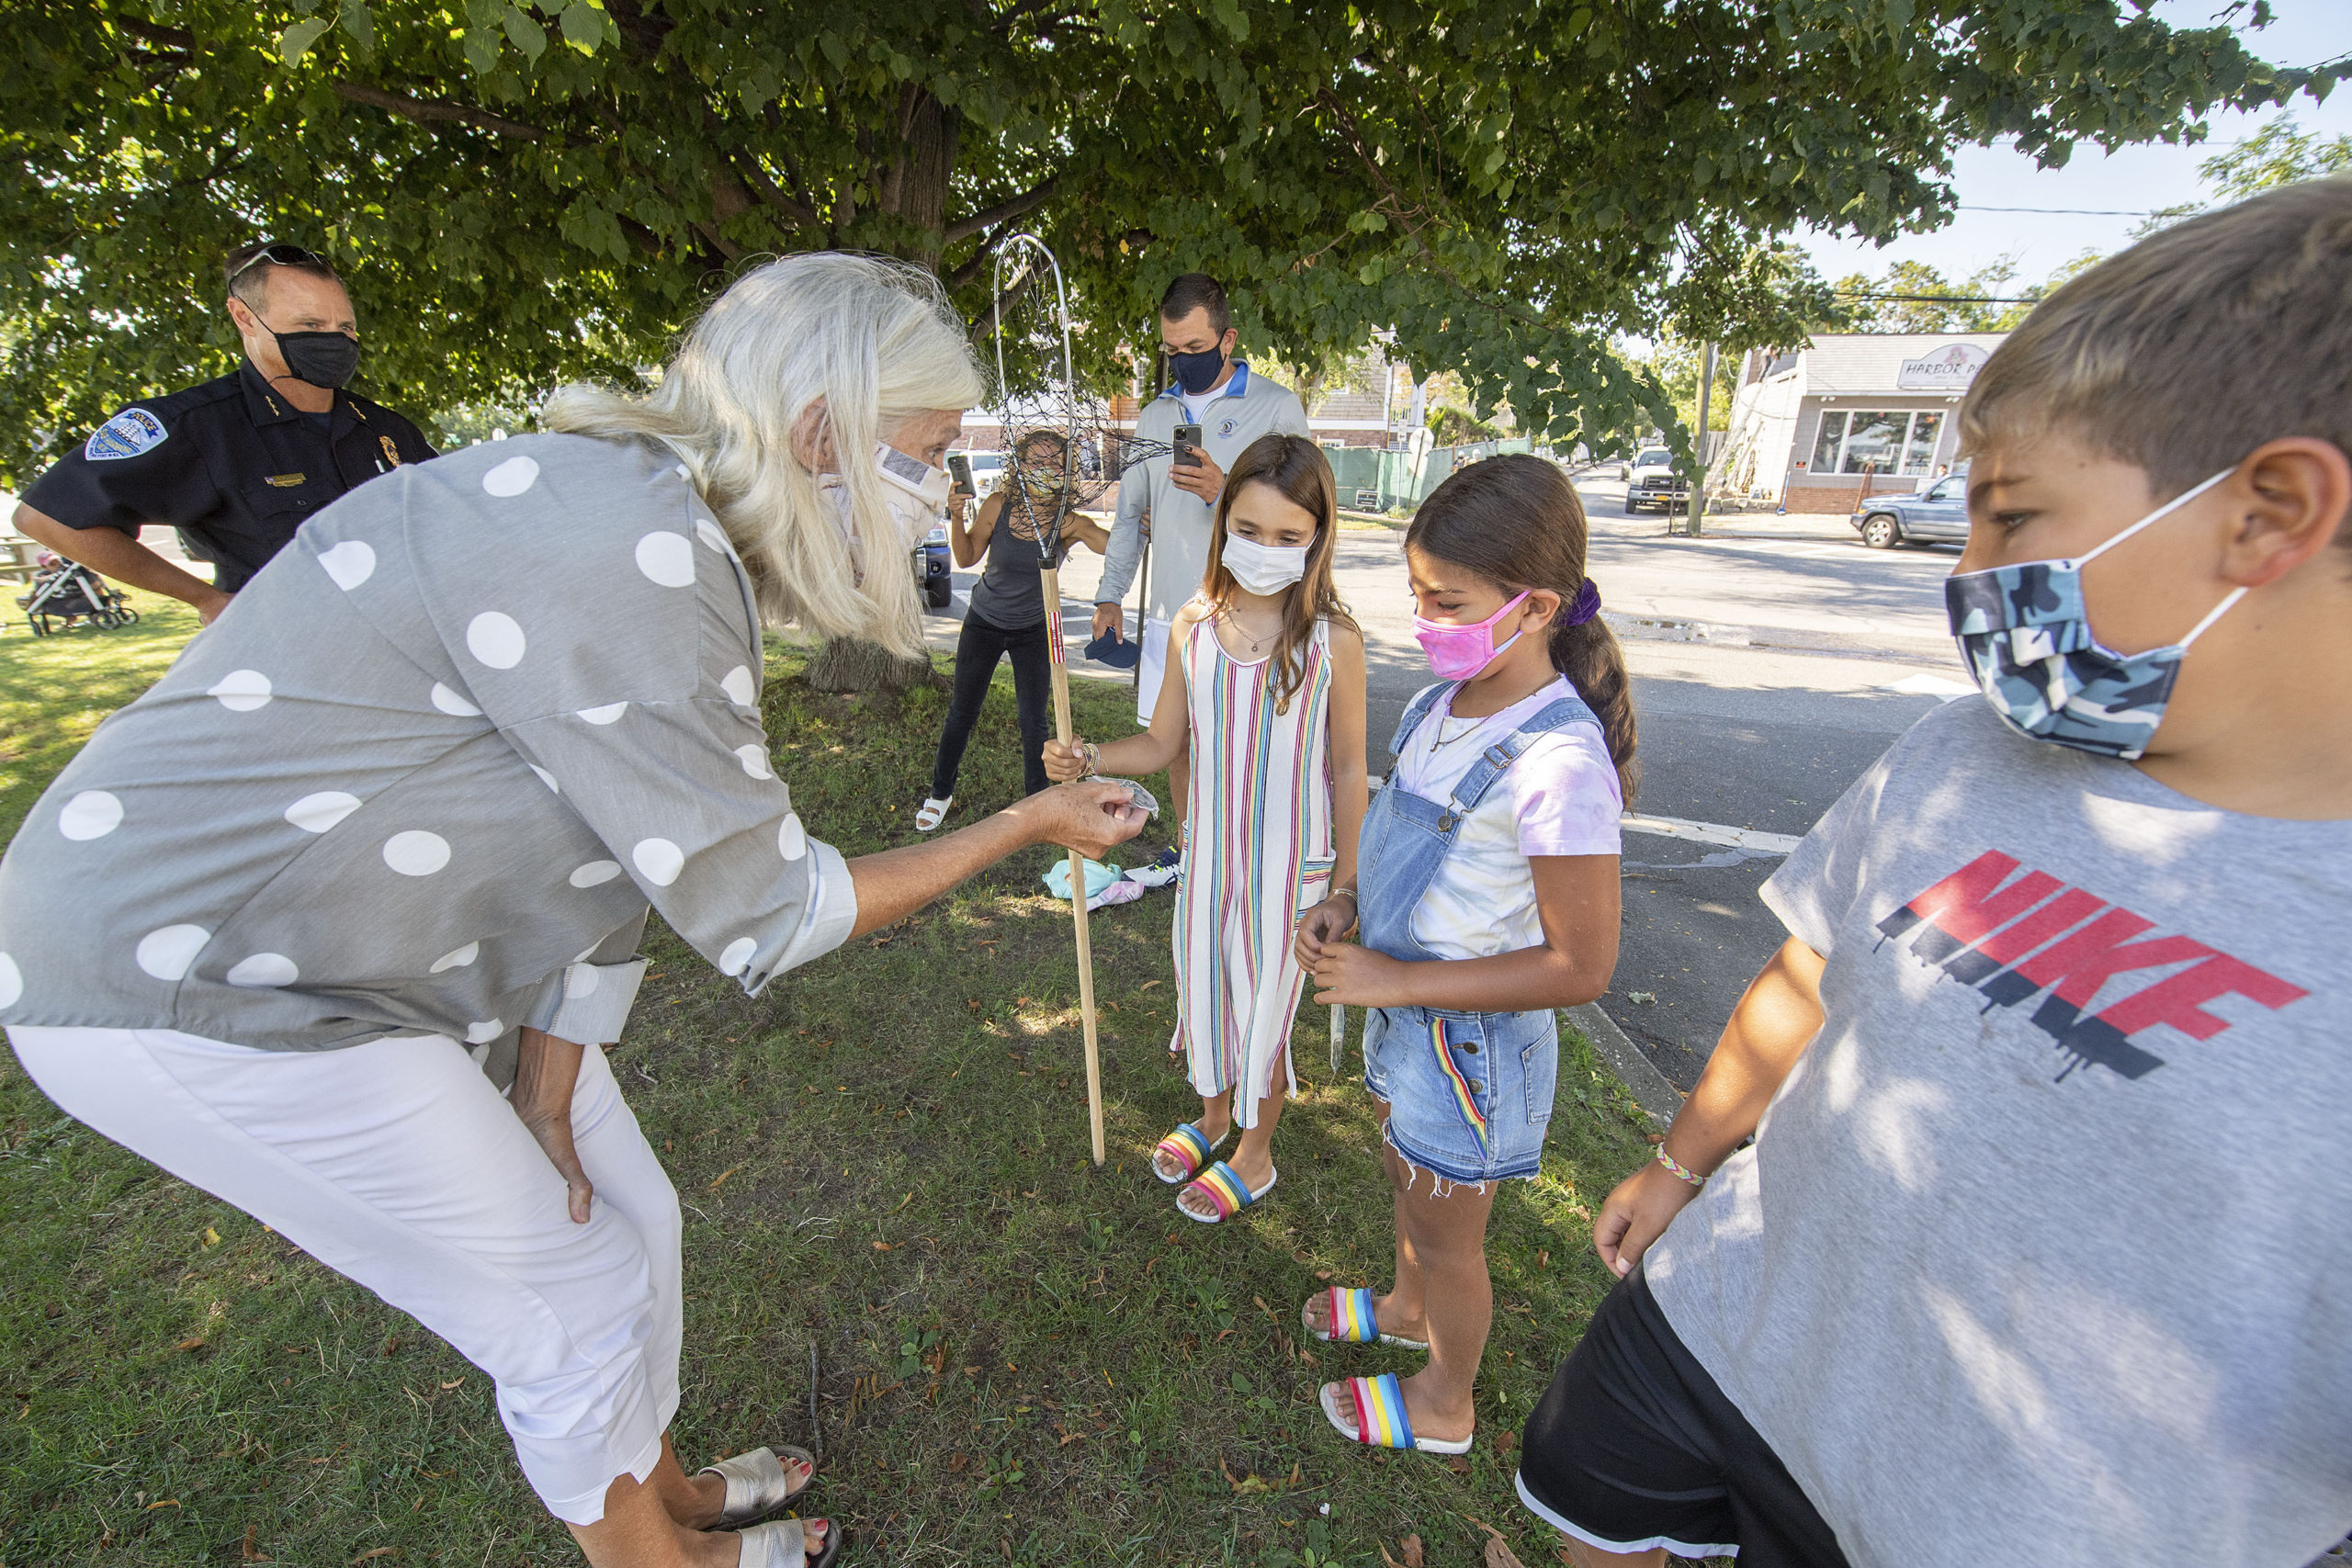 As Sag Harbor Village Police Chief Austin McGuire, brother Kyle, friend Lila Wiesenthal and family look on, Elle Maslin is presented with a